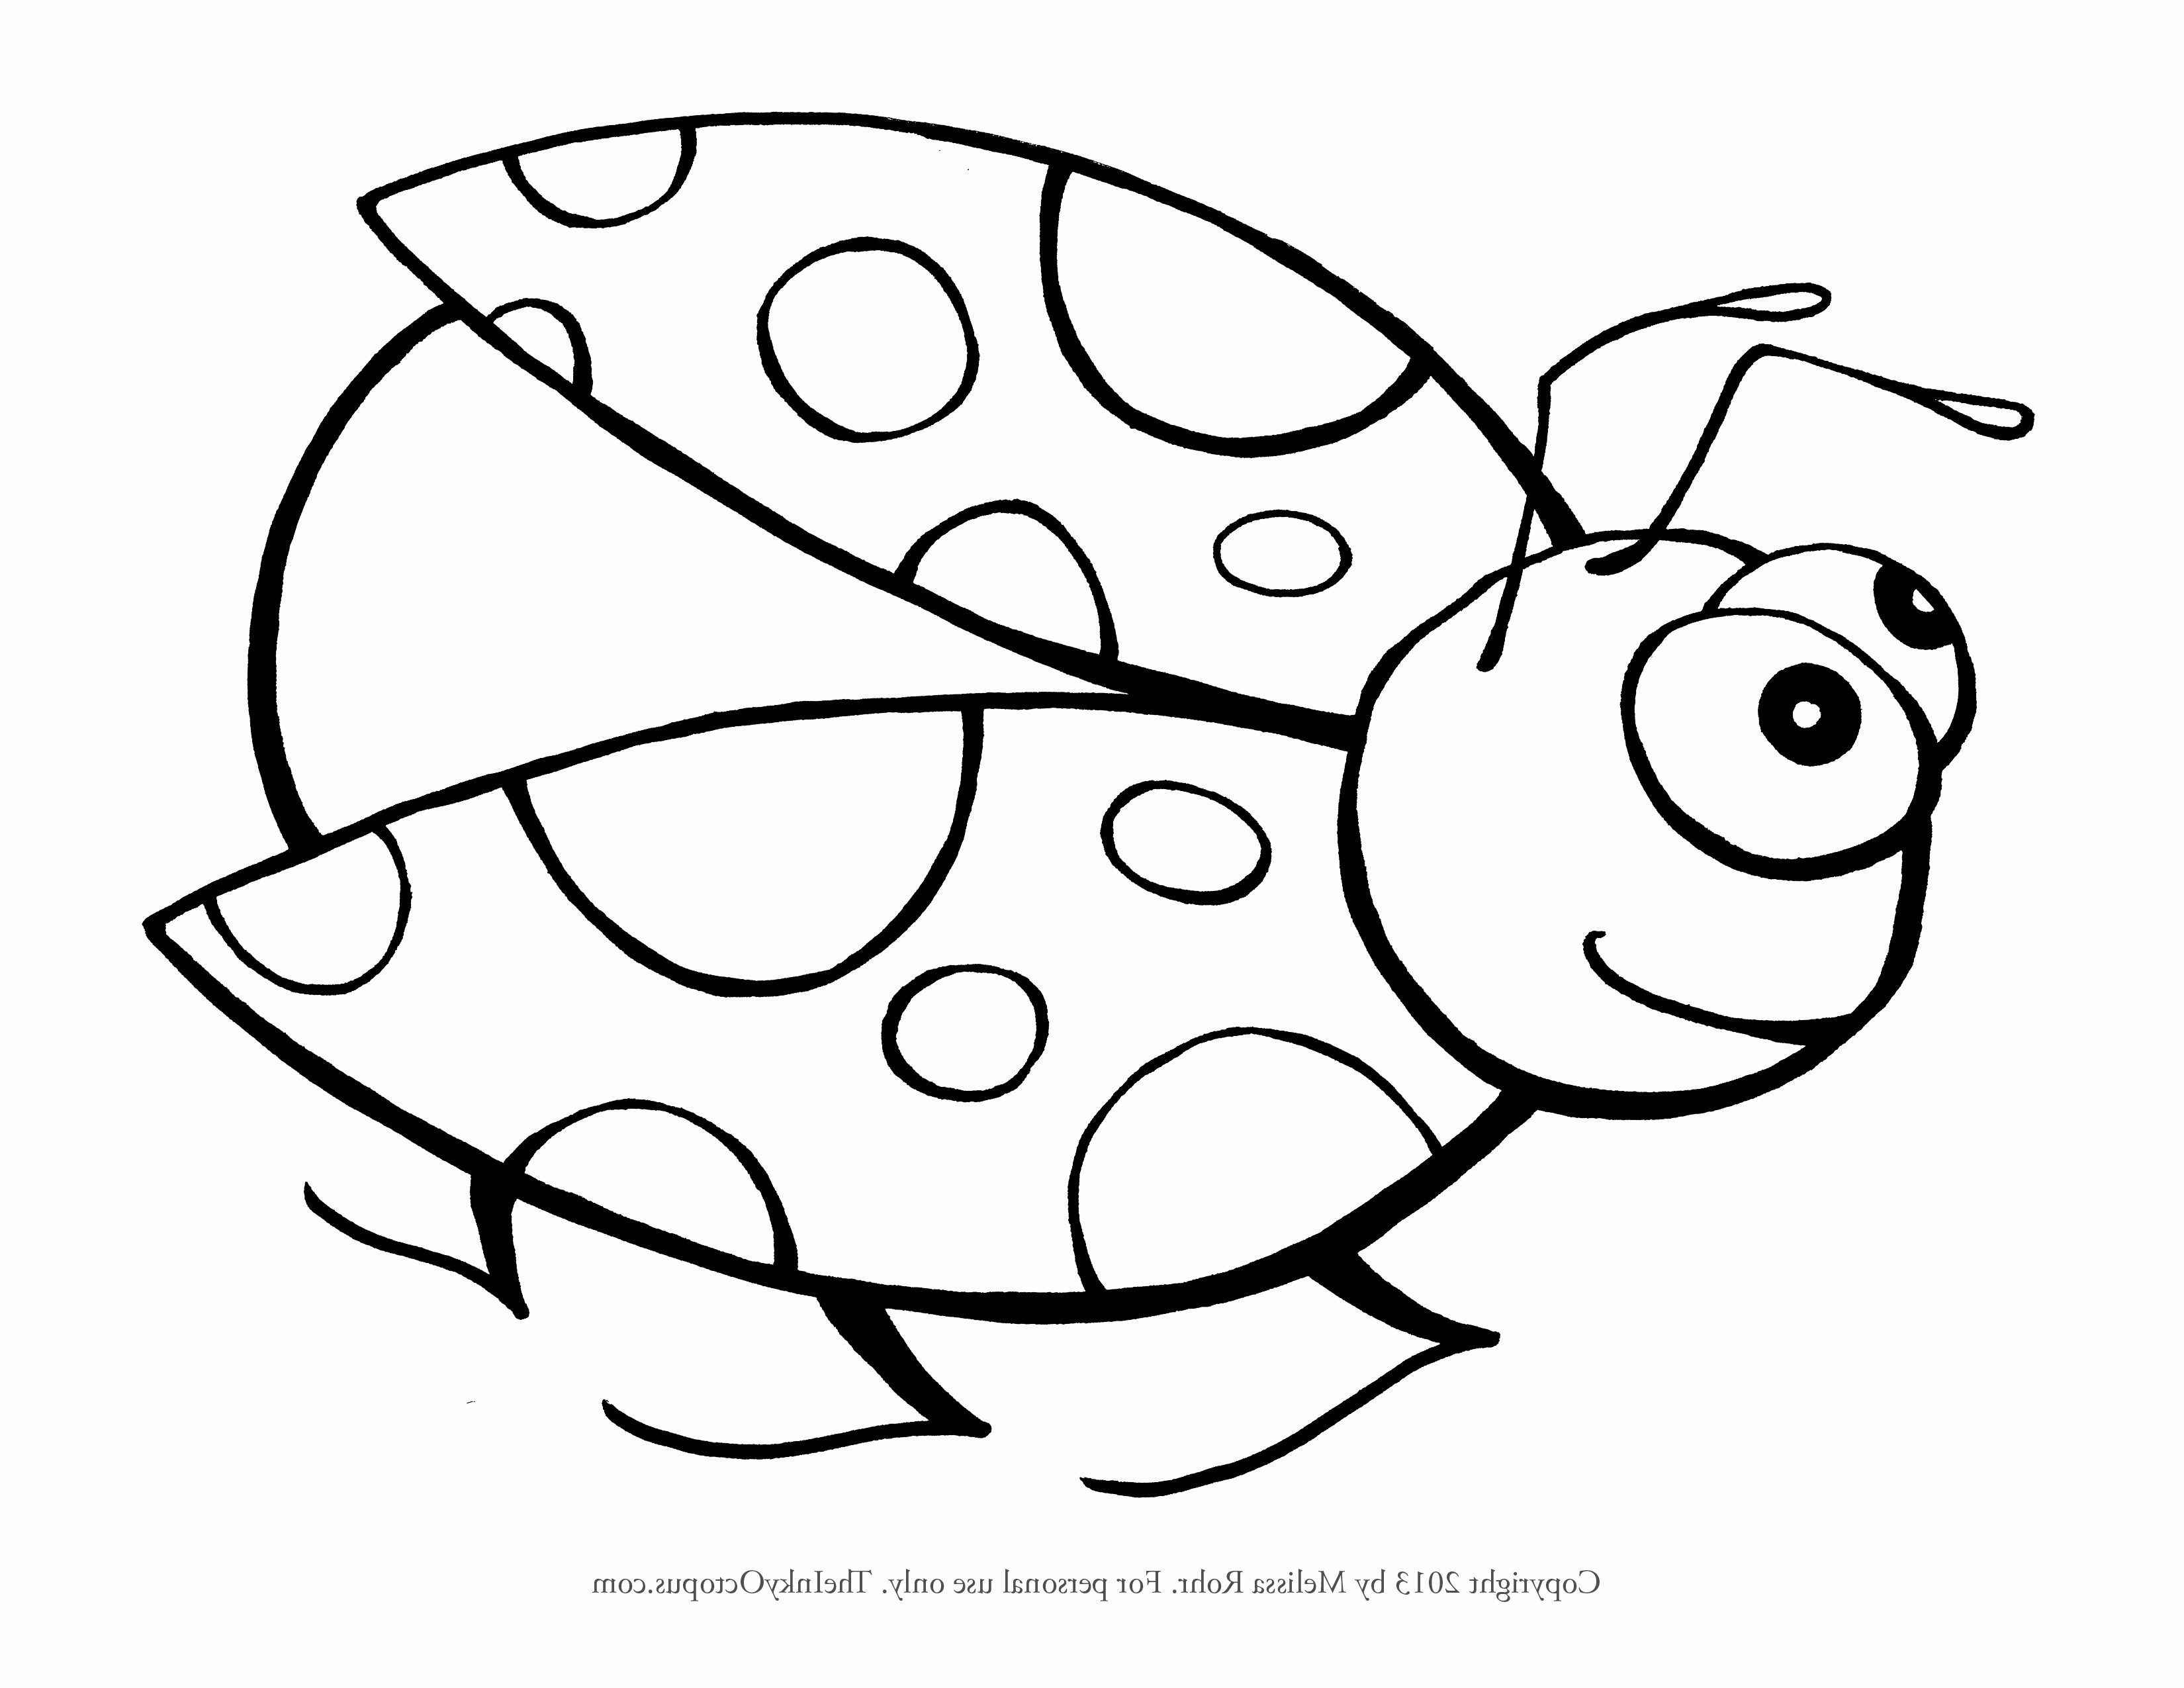 Ladybug Coloring Page Best Ladybug Coloring Sheets Design Ideas The Grouchy Pages 5